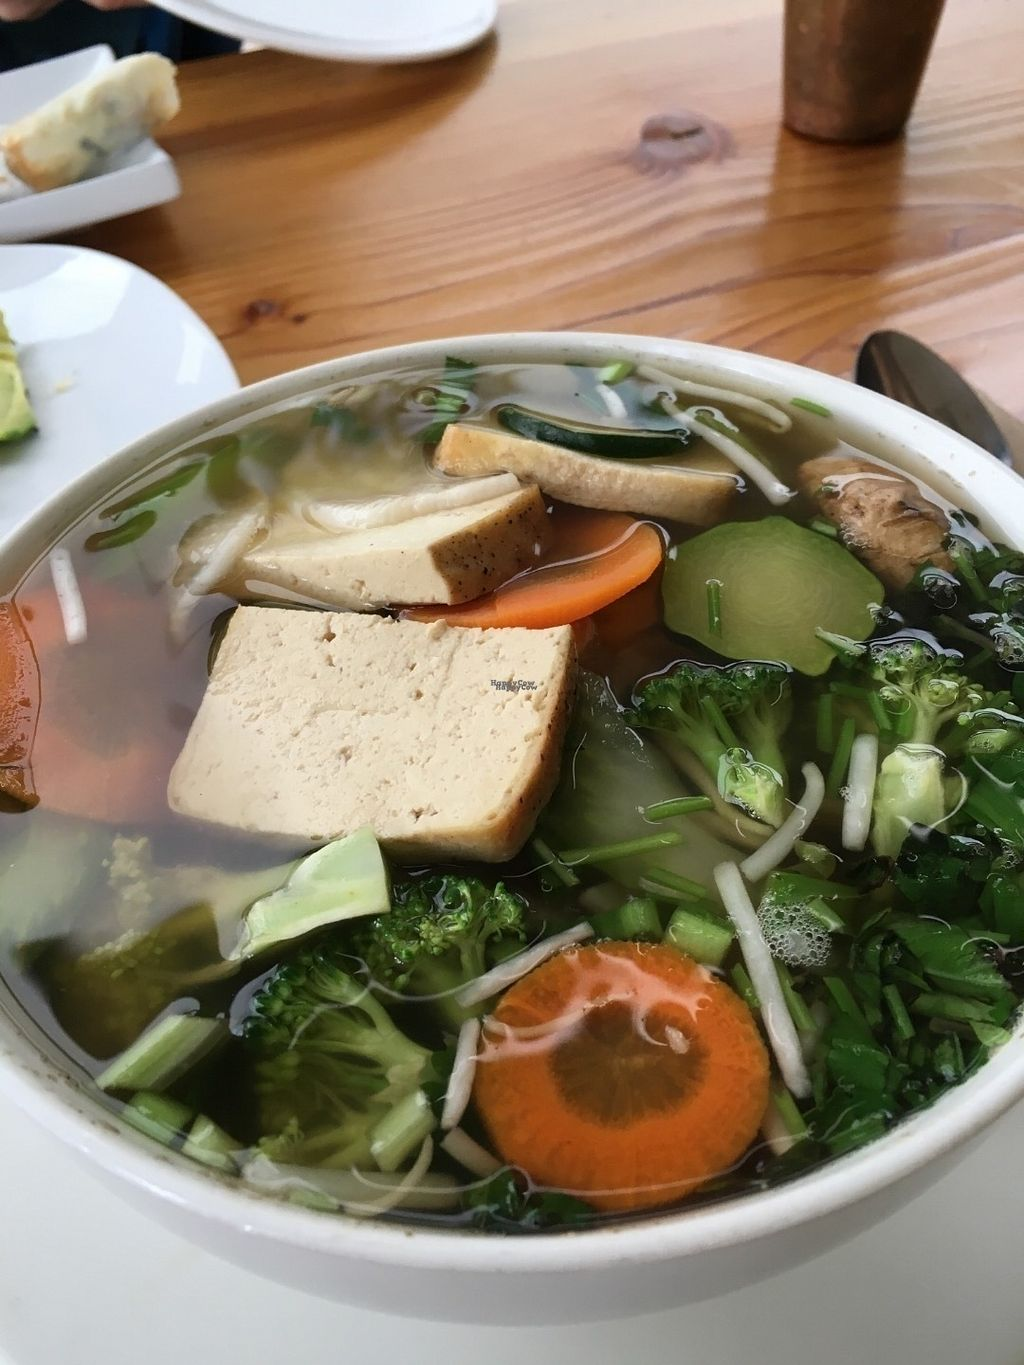 """Photo of Lotus Seed Vegan  by <a href=""""/members/profile/vegan%20frog"""">vegan frog</a> <br/>Pho (so delicious!) <br/> September 3, 2016  - <a href='/contact/abuse/image/50638/173162'>Report</a>"""